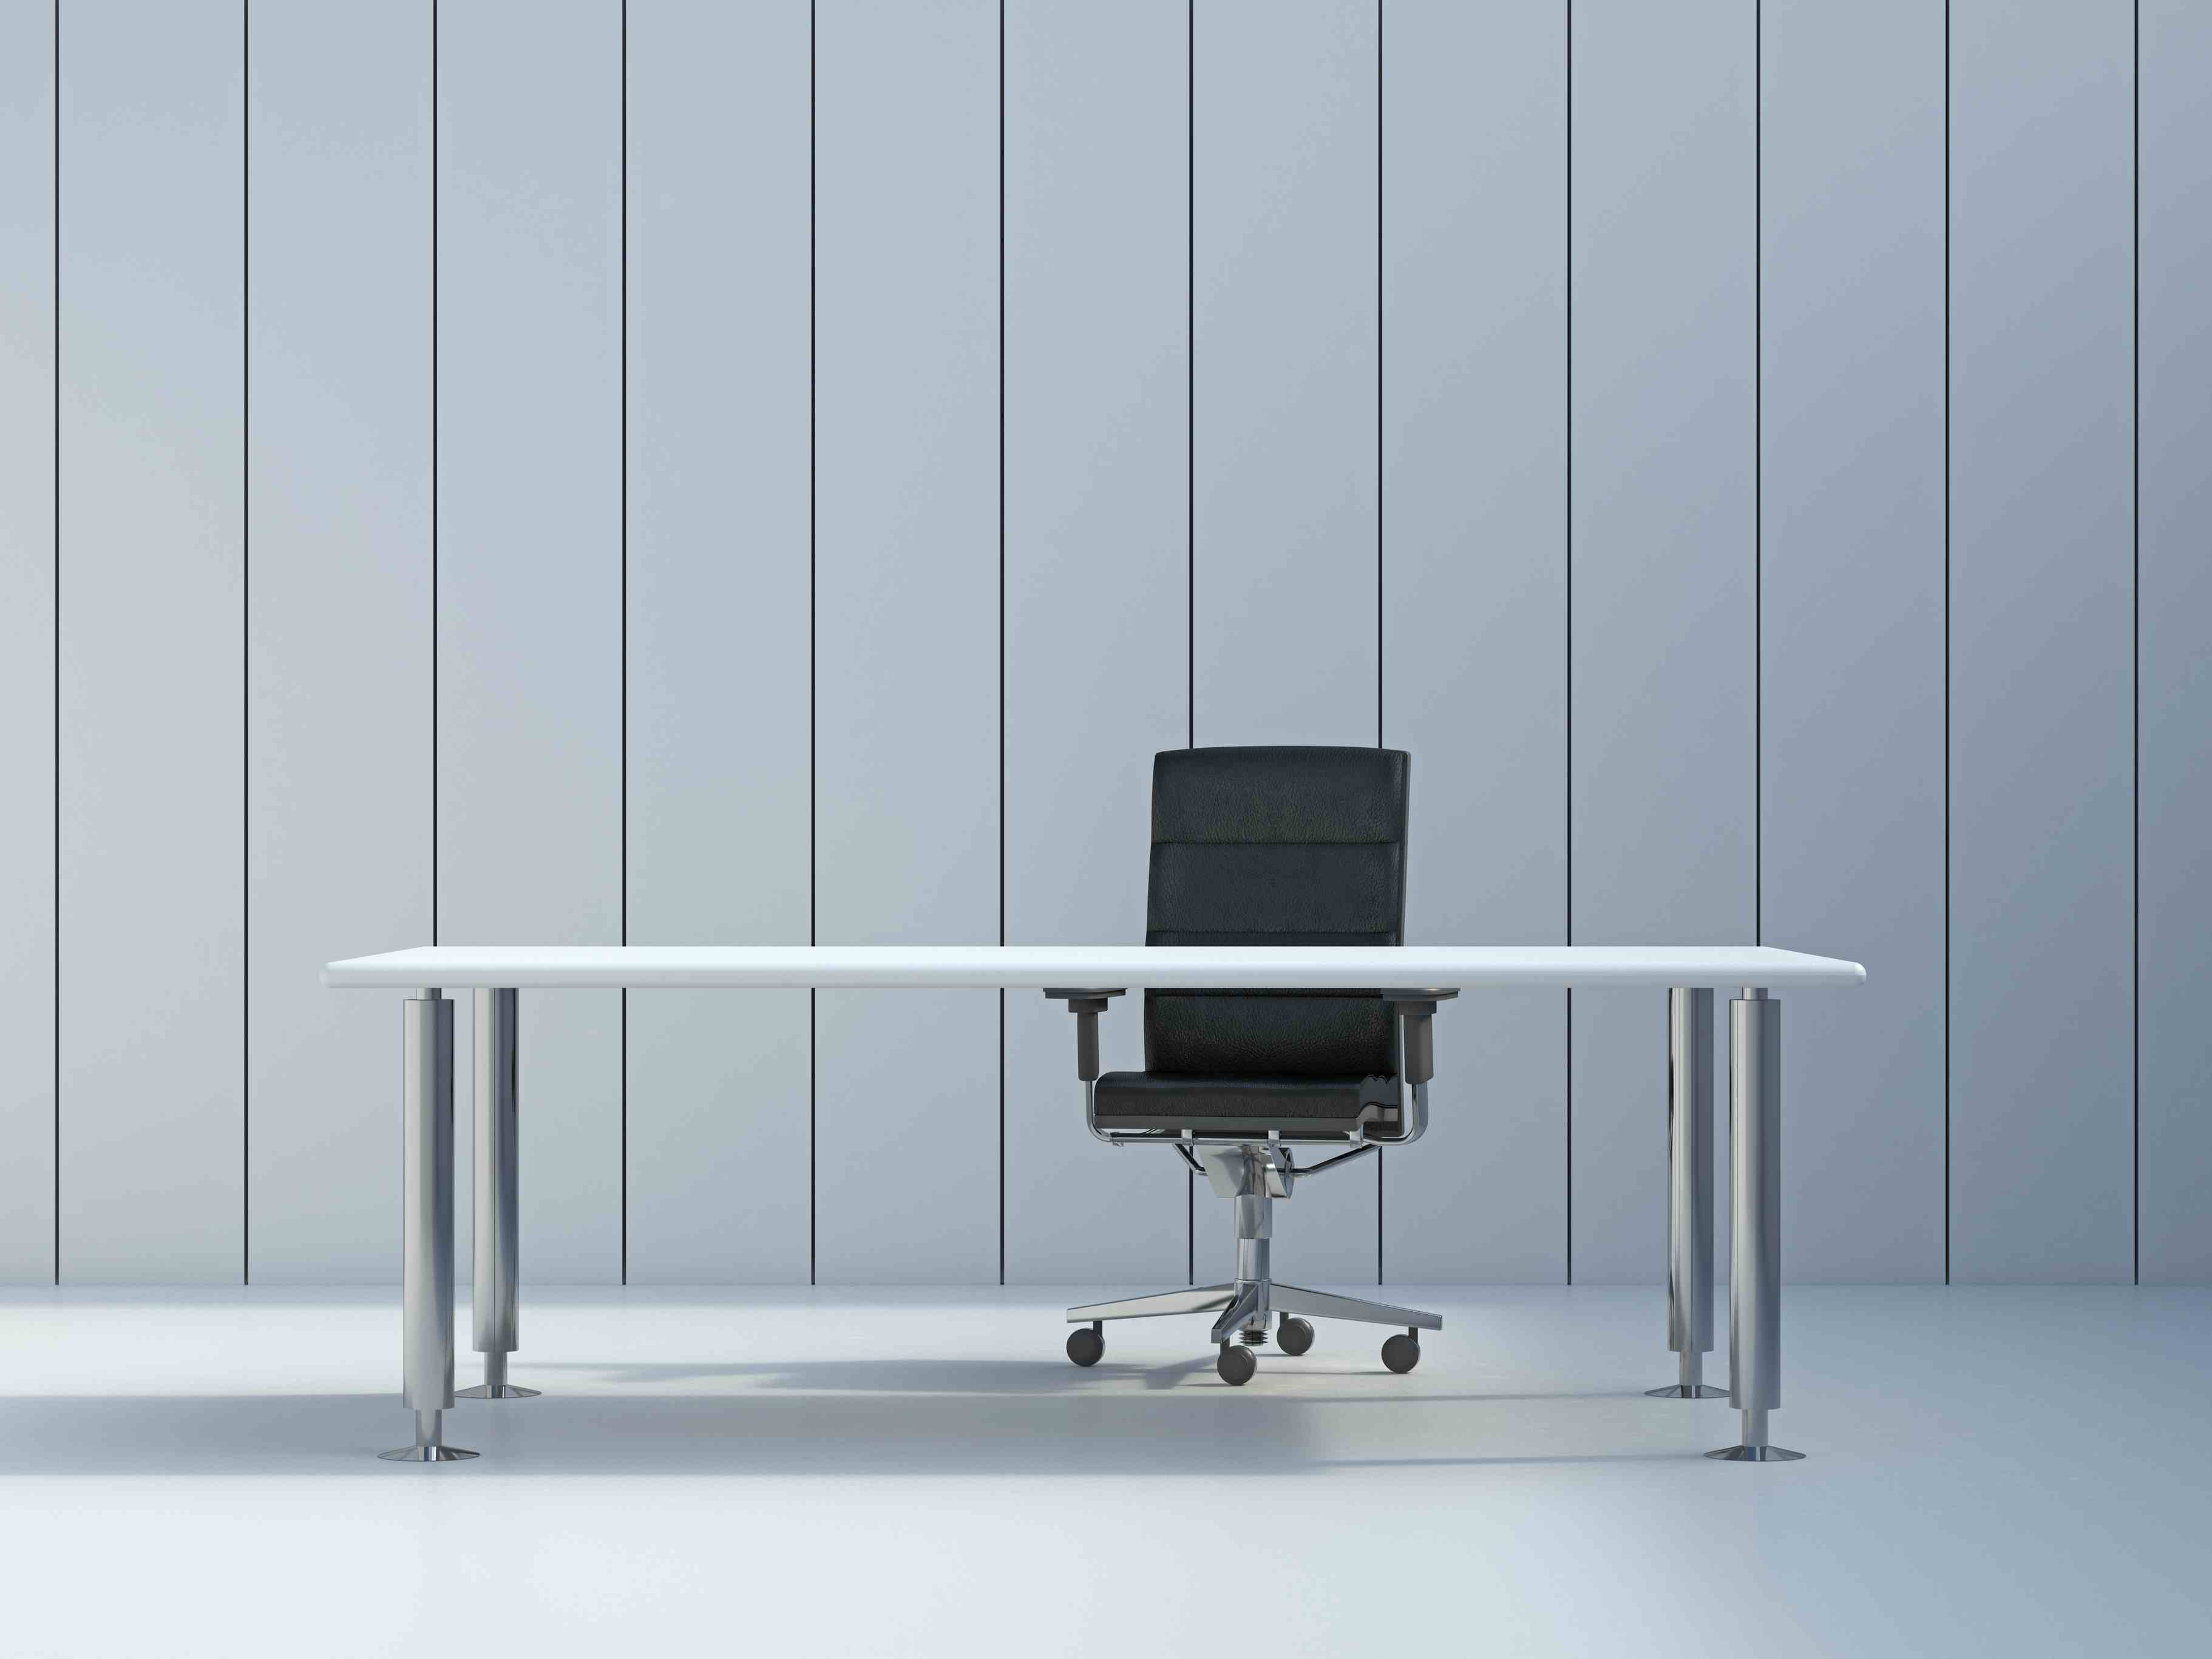 Office chair and conference table in front of grey wall panel, 3D Rendering